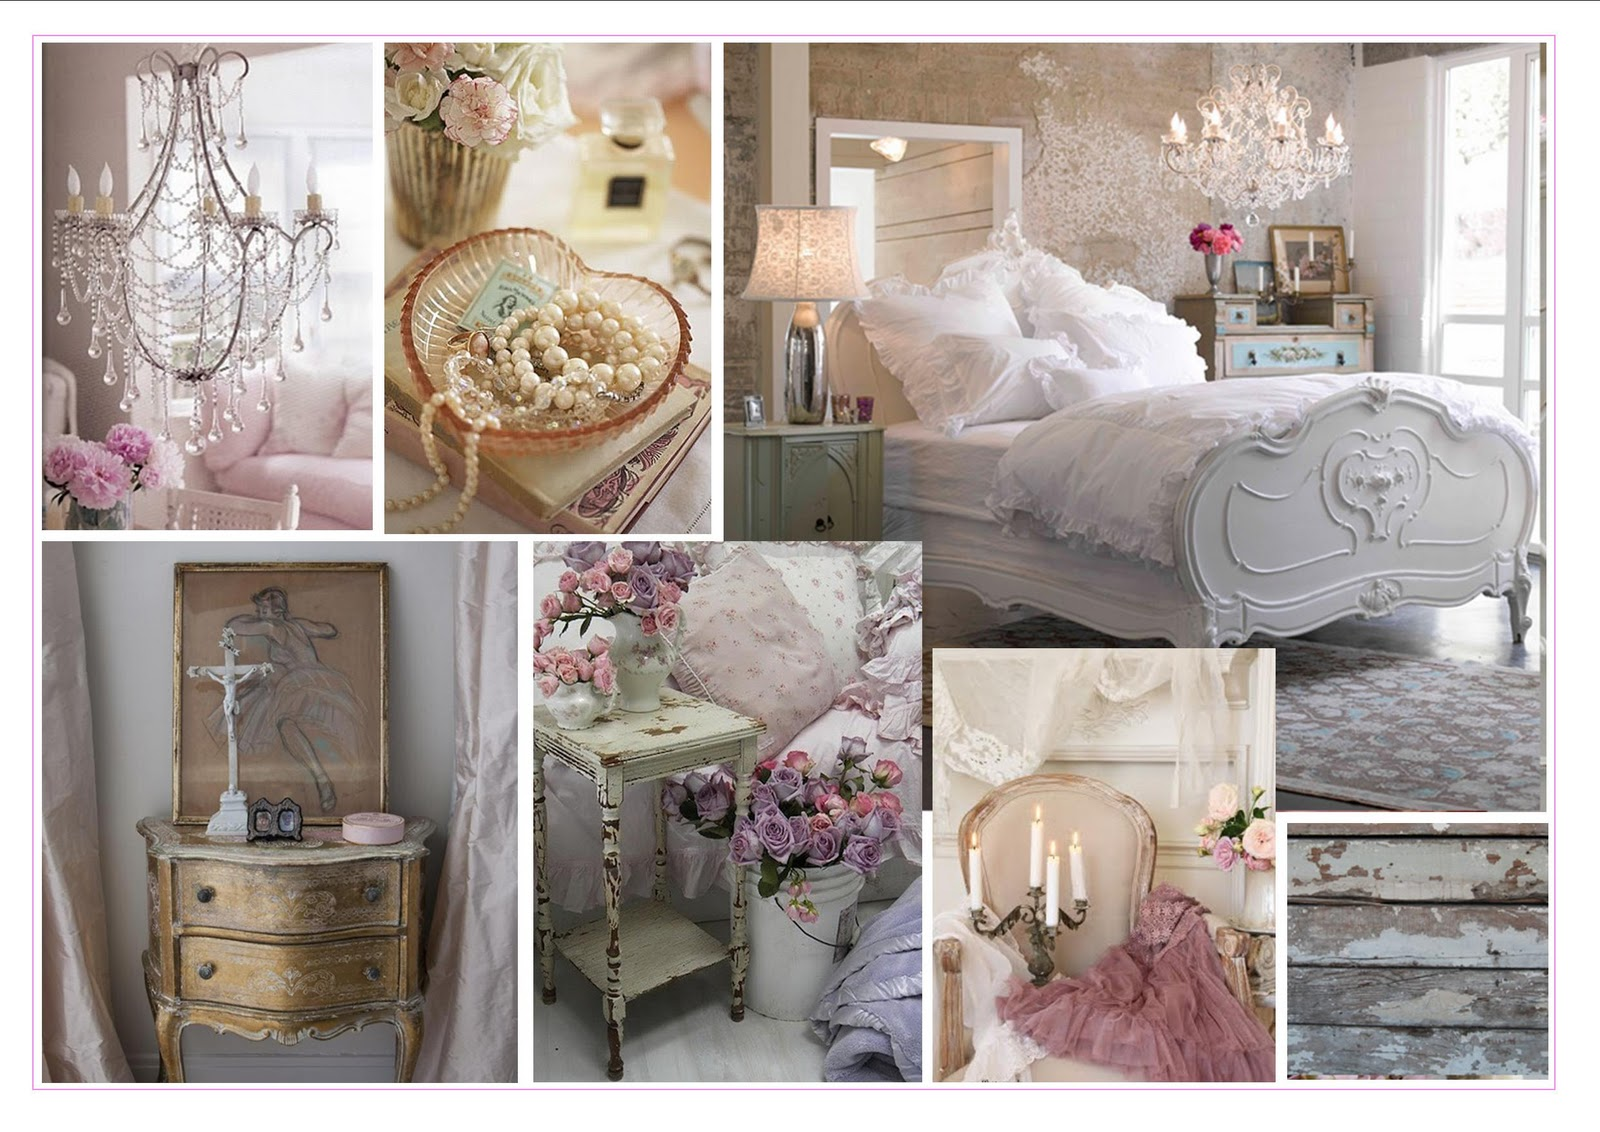 shabby chic soluzioni d 39 arredosoluzioni d 39 arredo. Black Bedroom Furniture Sets. Home Design Ideas